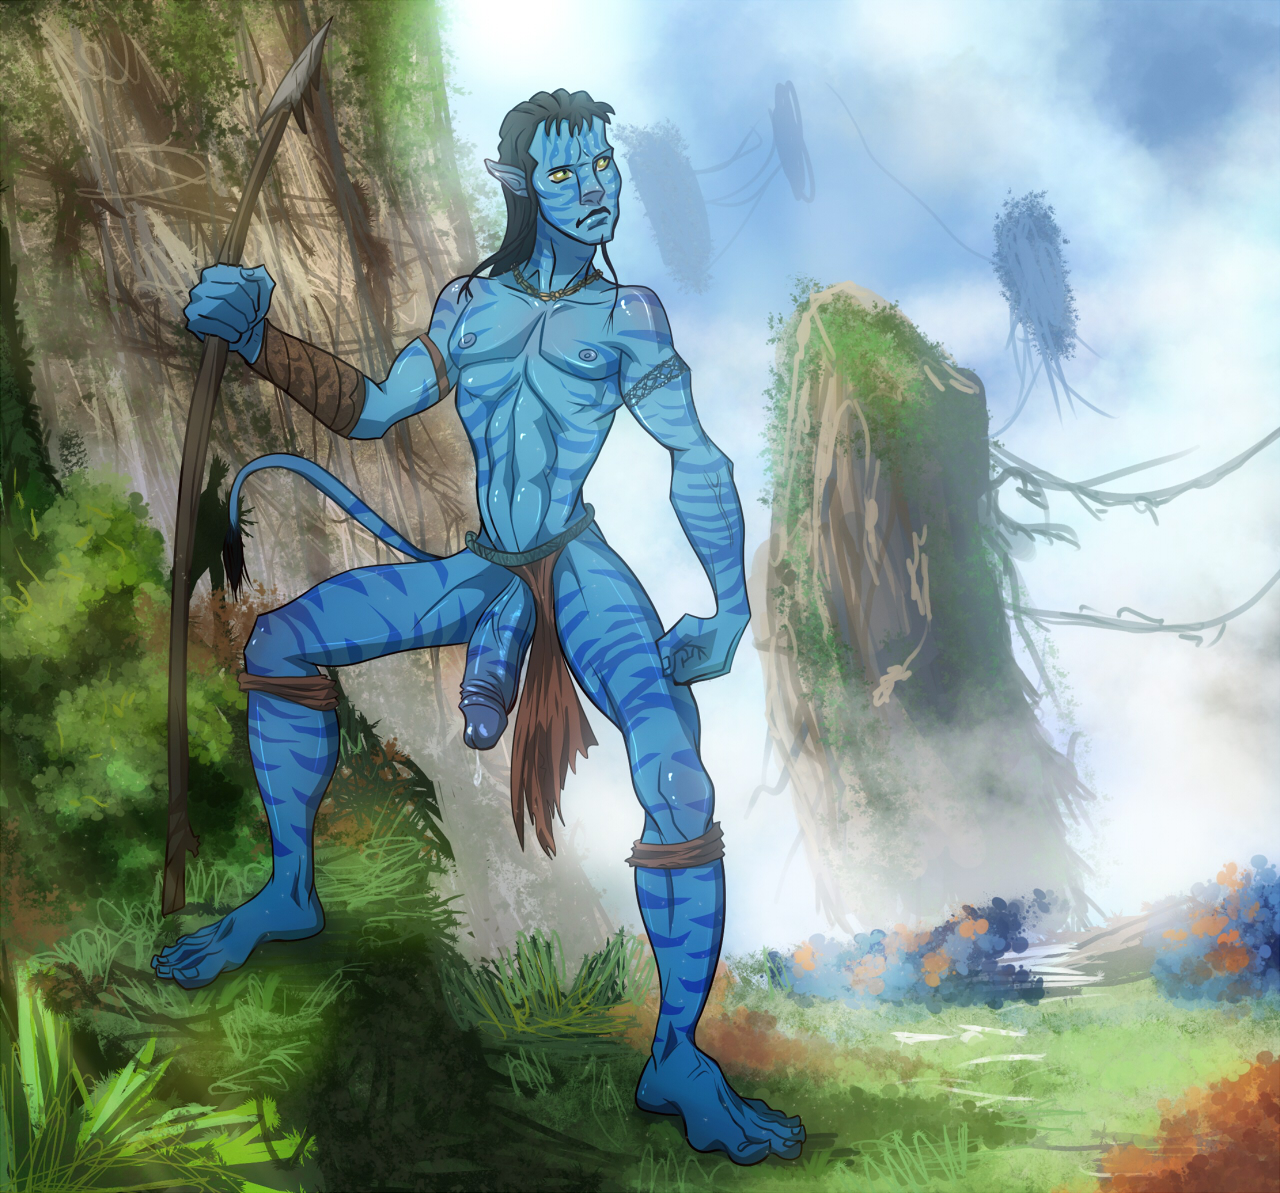 from Clyde gay sex clips of avatar